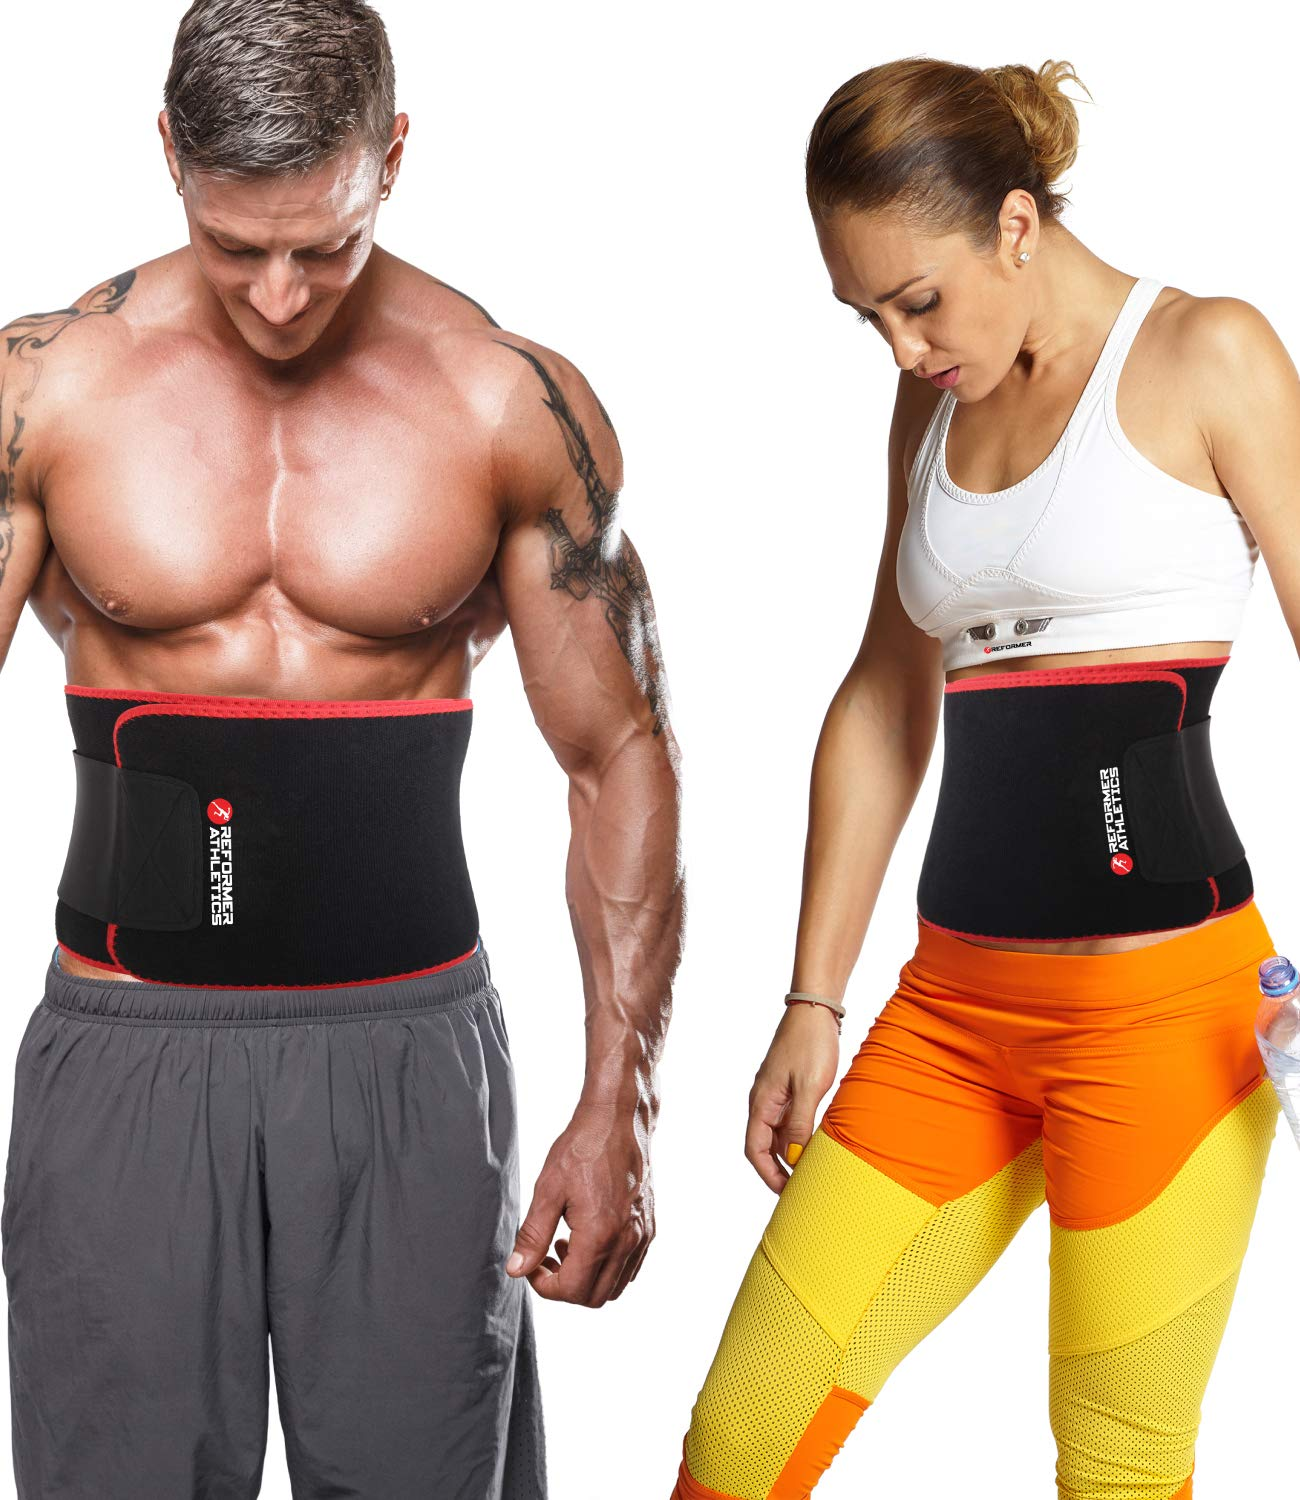 Top 5 Best Waist Trimmers Reviews in 2020 1